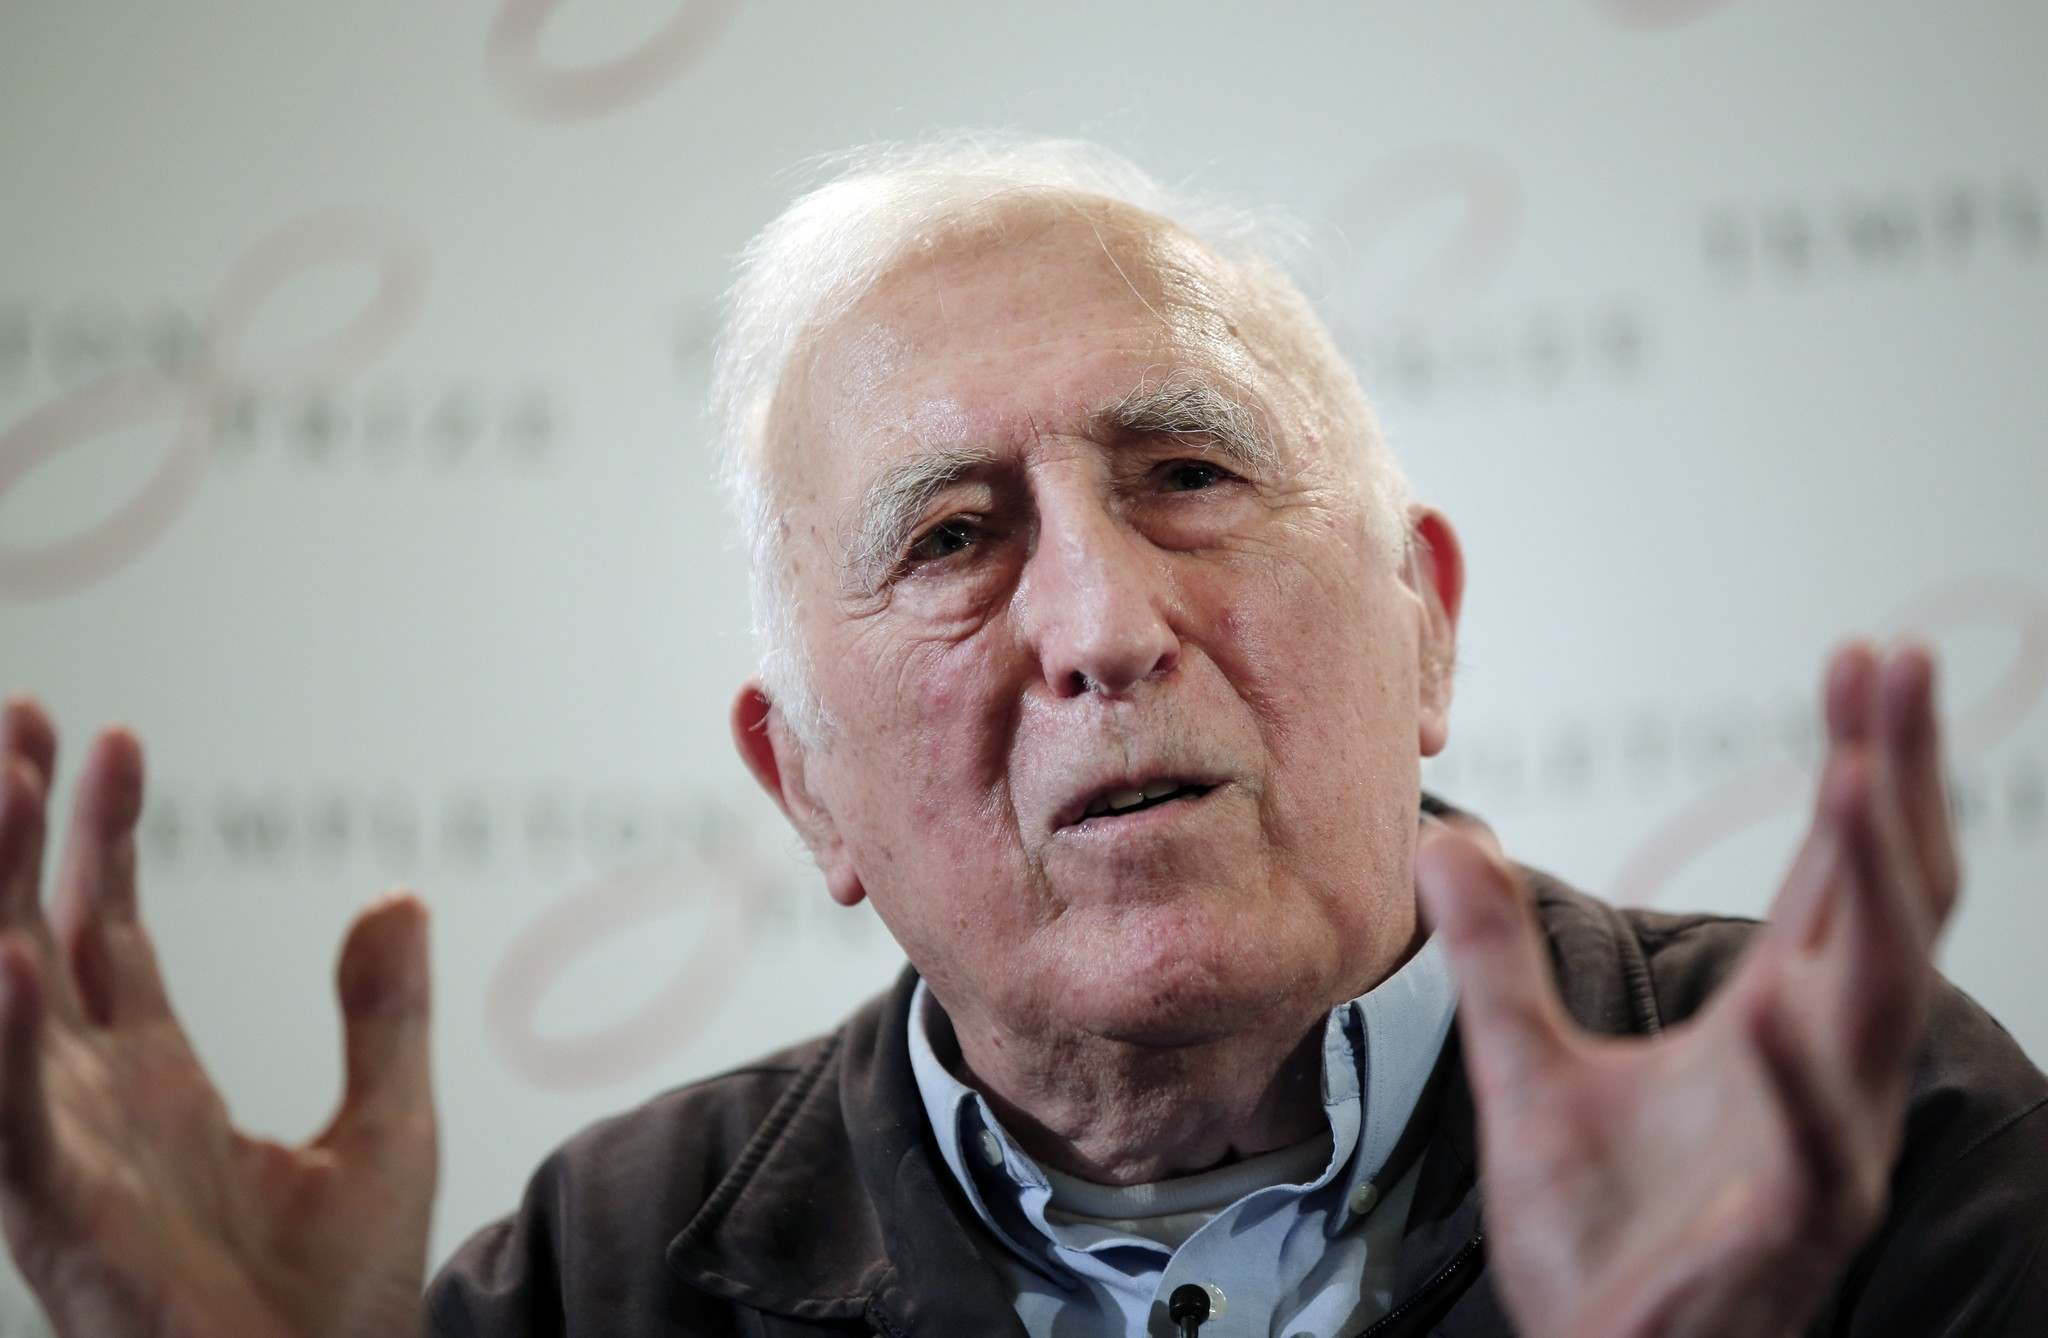 THE CANADIAN PRESS/AP/Lefteris Pitarakis</p><p>A report last month revealed that L'Arche founder Jean Vanier, a respected Canadian religious figure, sexually abused at least six women.</p>